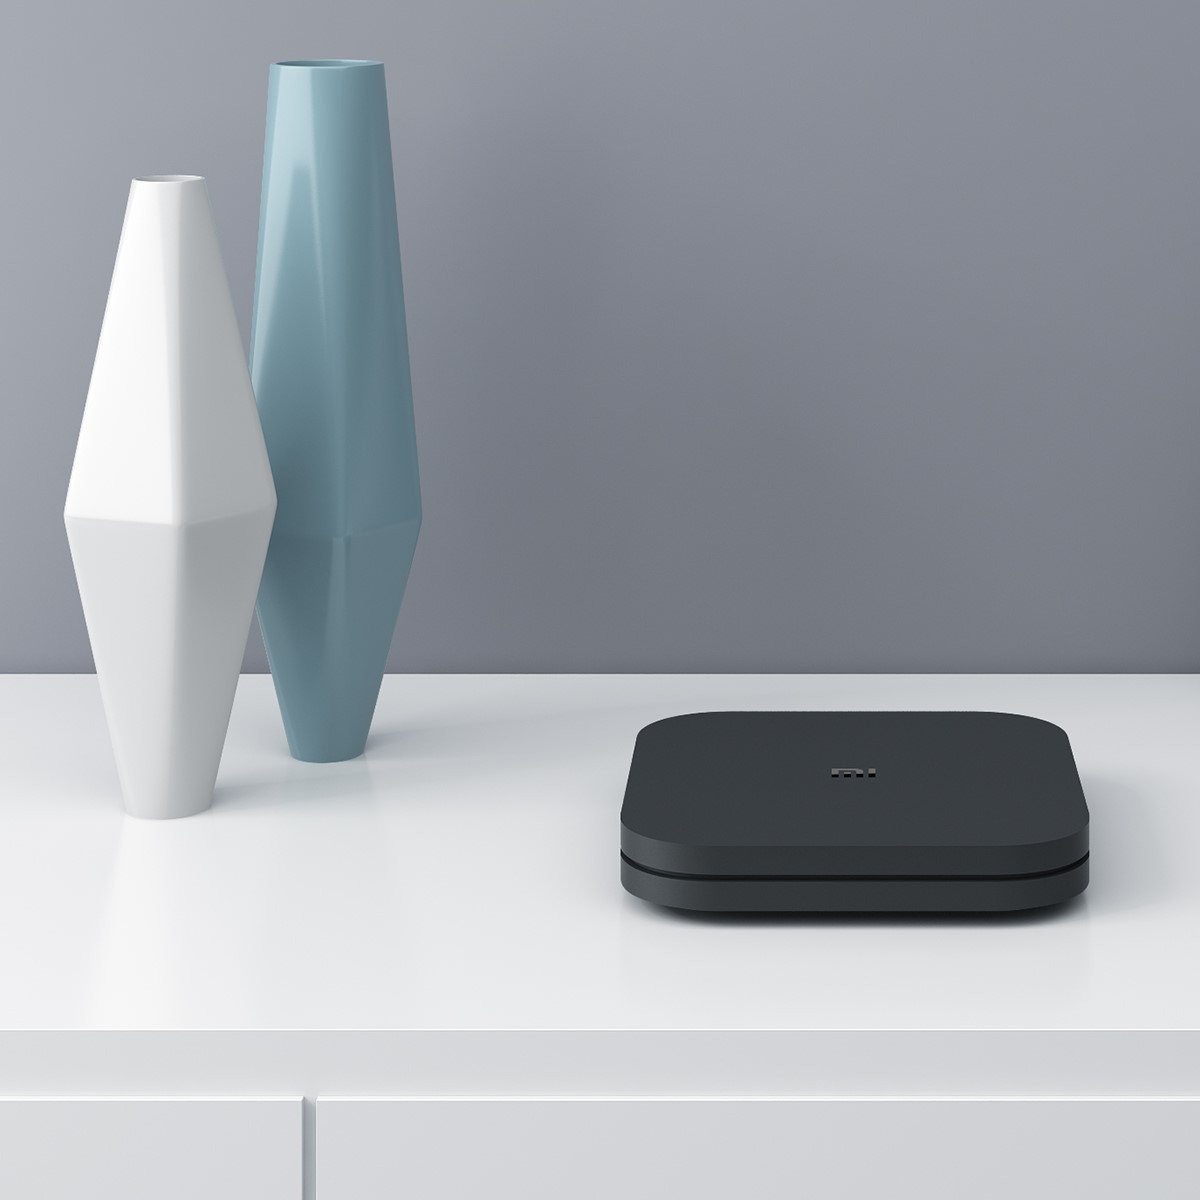 Xiaomi Mi Box S 4K HDR Android TV BOX with Google Assistant ChromeCast  Ultra | Go Android TV Box